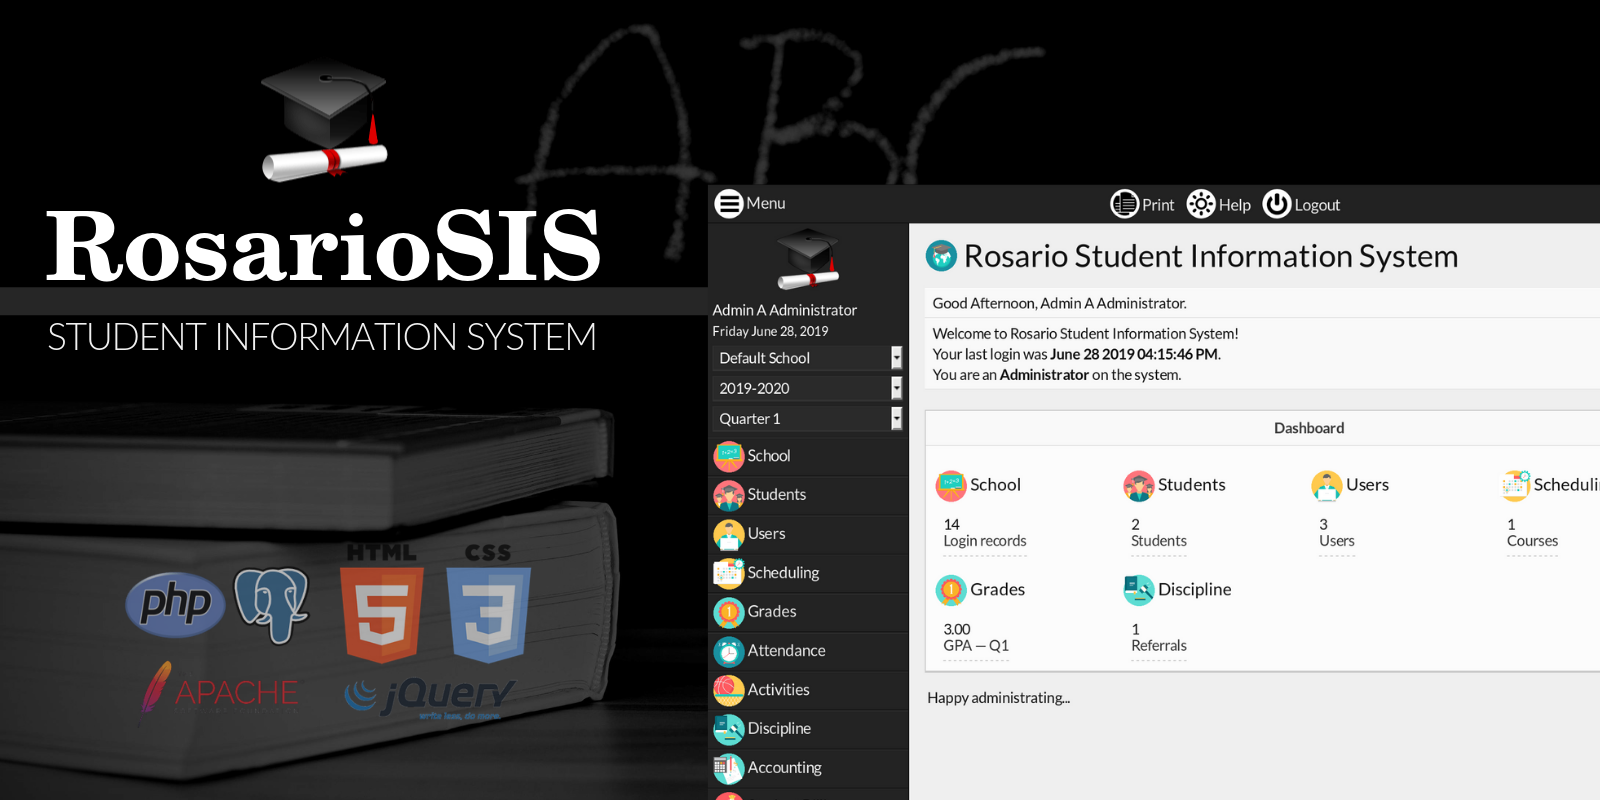 RosarioSIS Student Information System